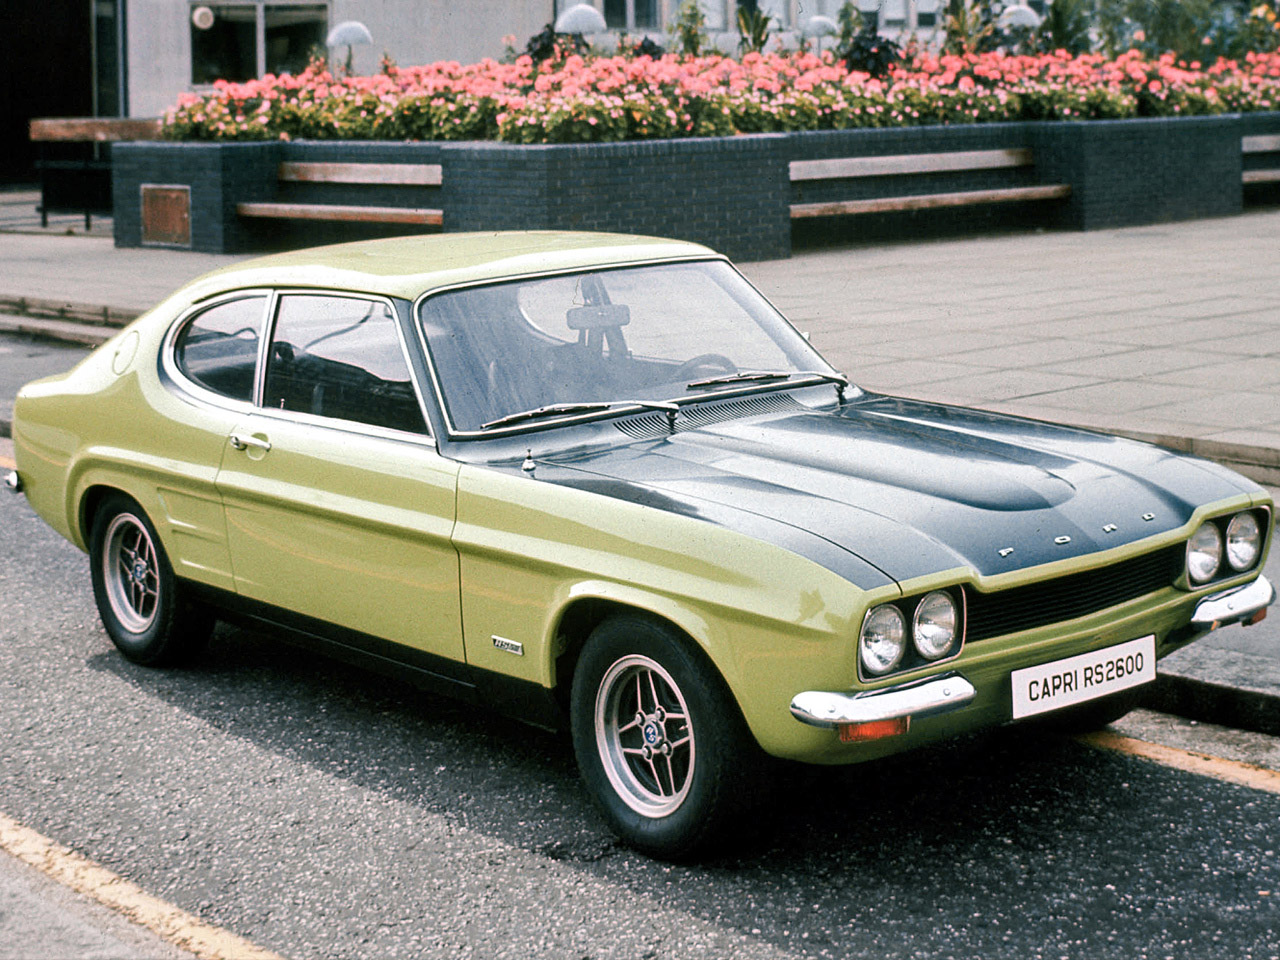 ford capri rs2600 1970 1974 ford capri rs2600 1970 1974 photo 01 car in pictures car photo. Black Bedroom Furniture Sets. Home Design Ideas